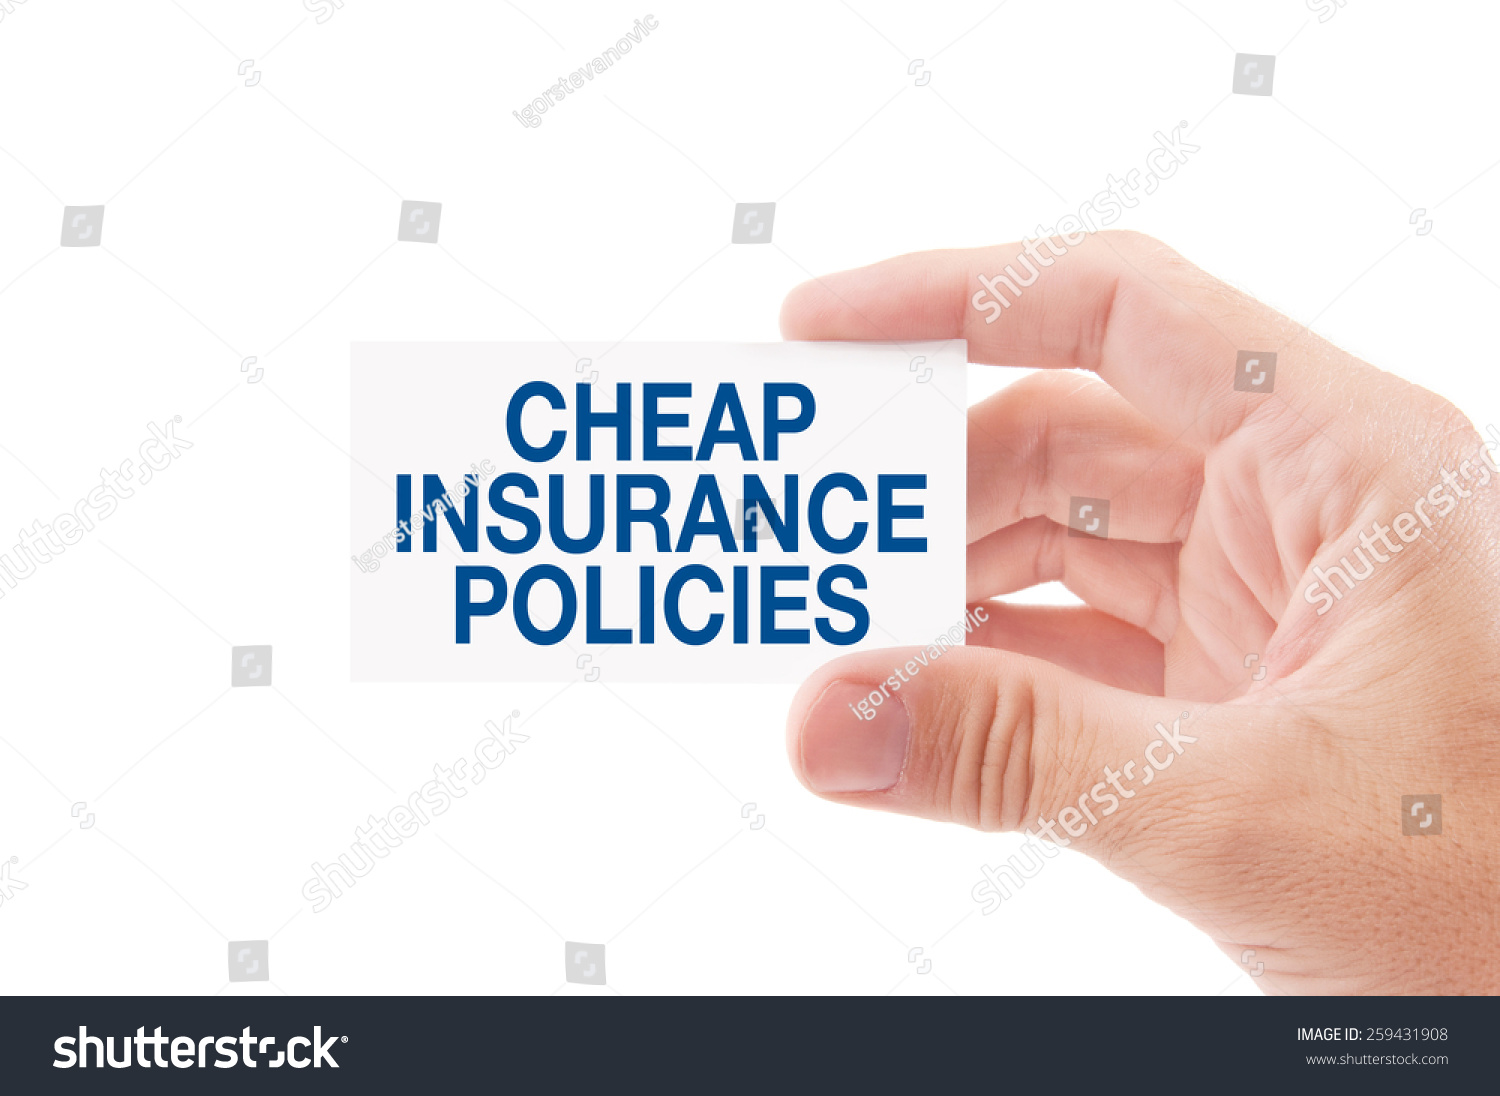 Business Card Insurance Image collections - Free Business Cards